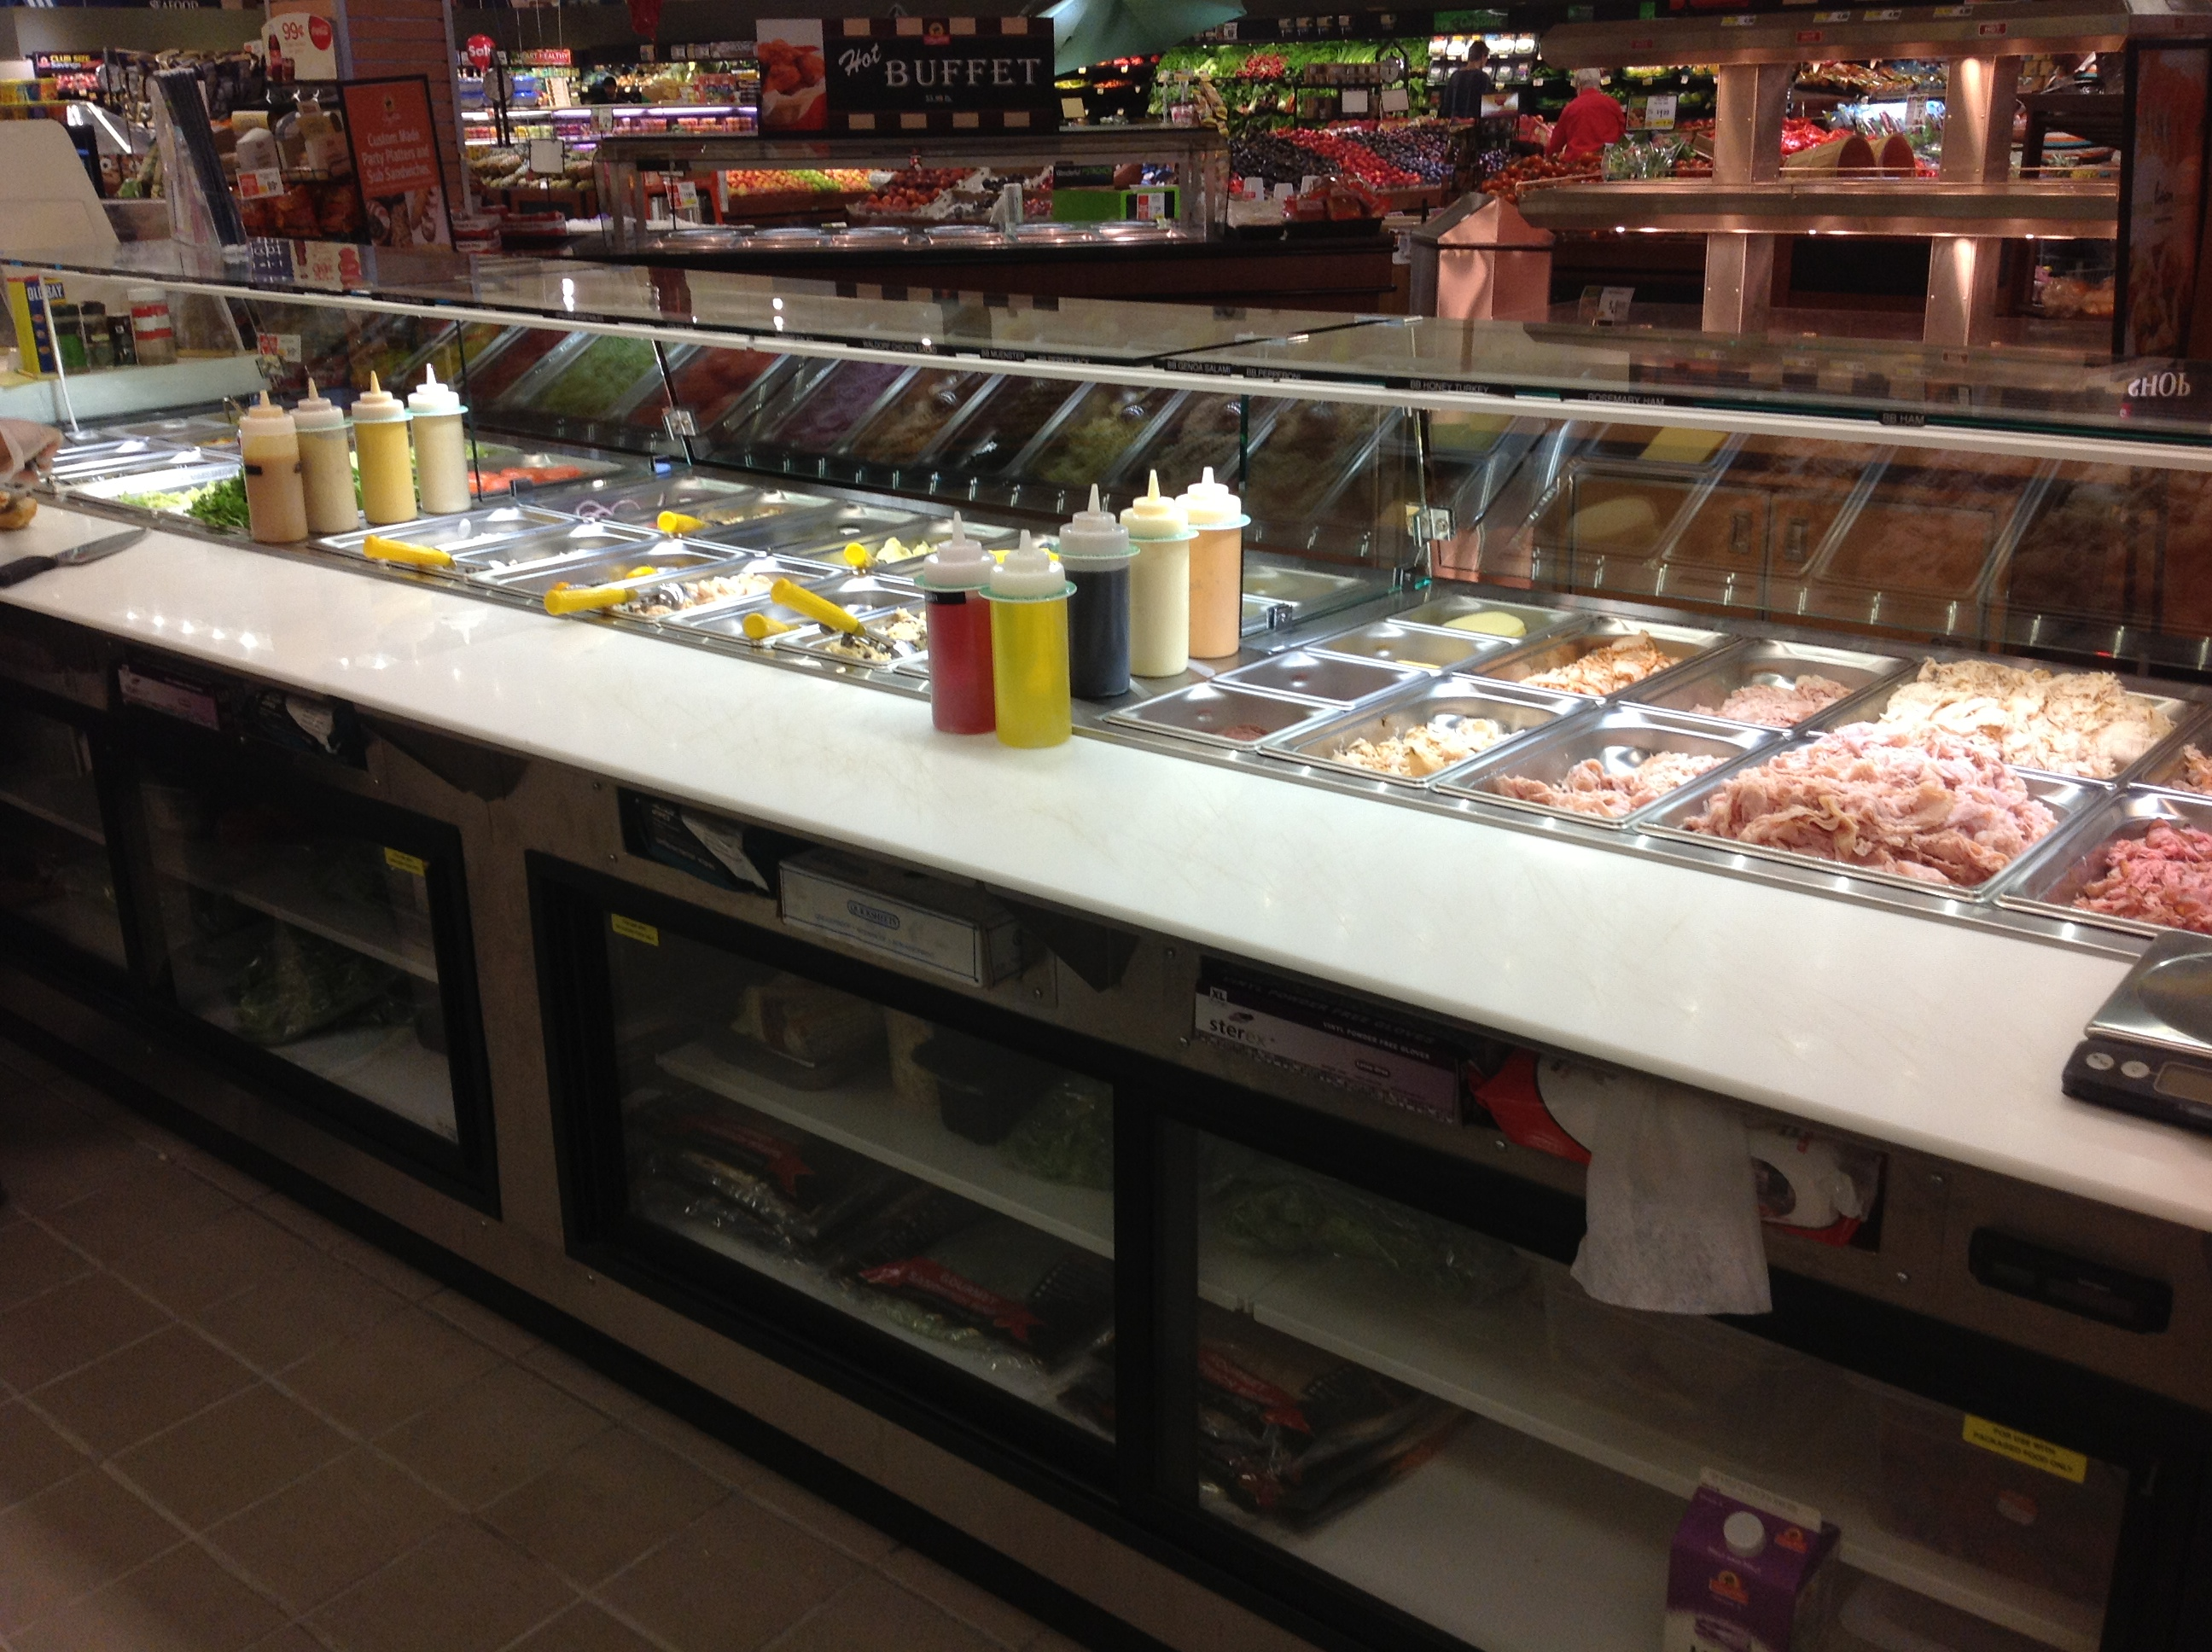 office space ideas photos - Bakery and Deli Display Cases Borgen Refrigerated Systems